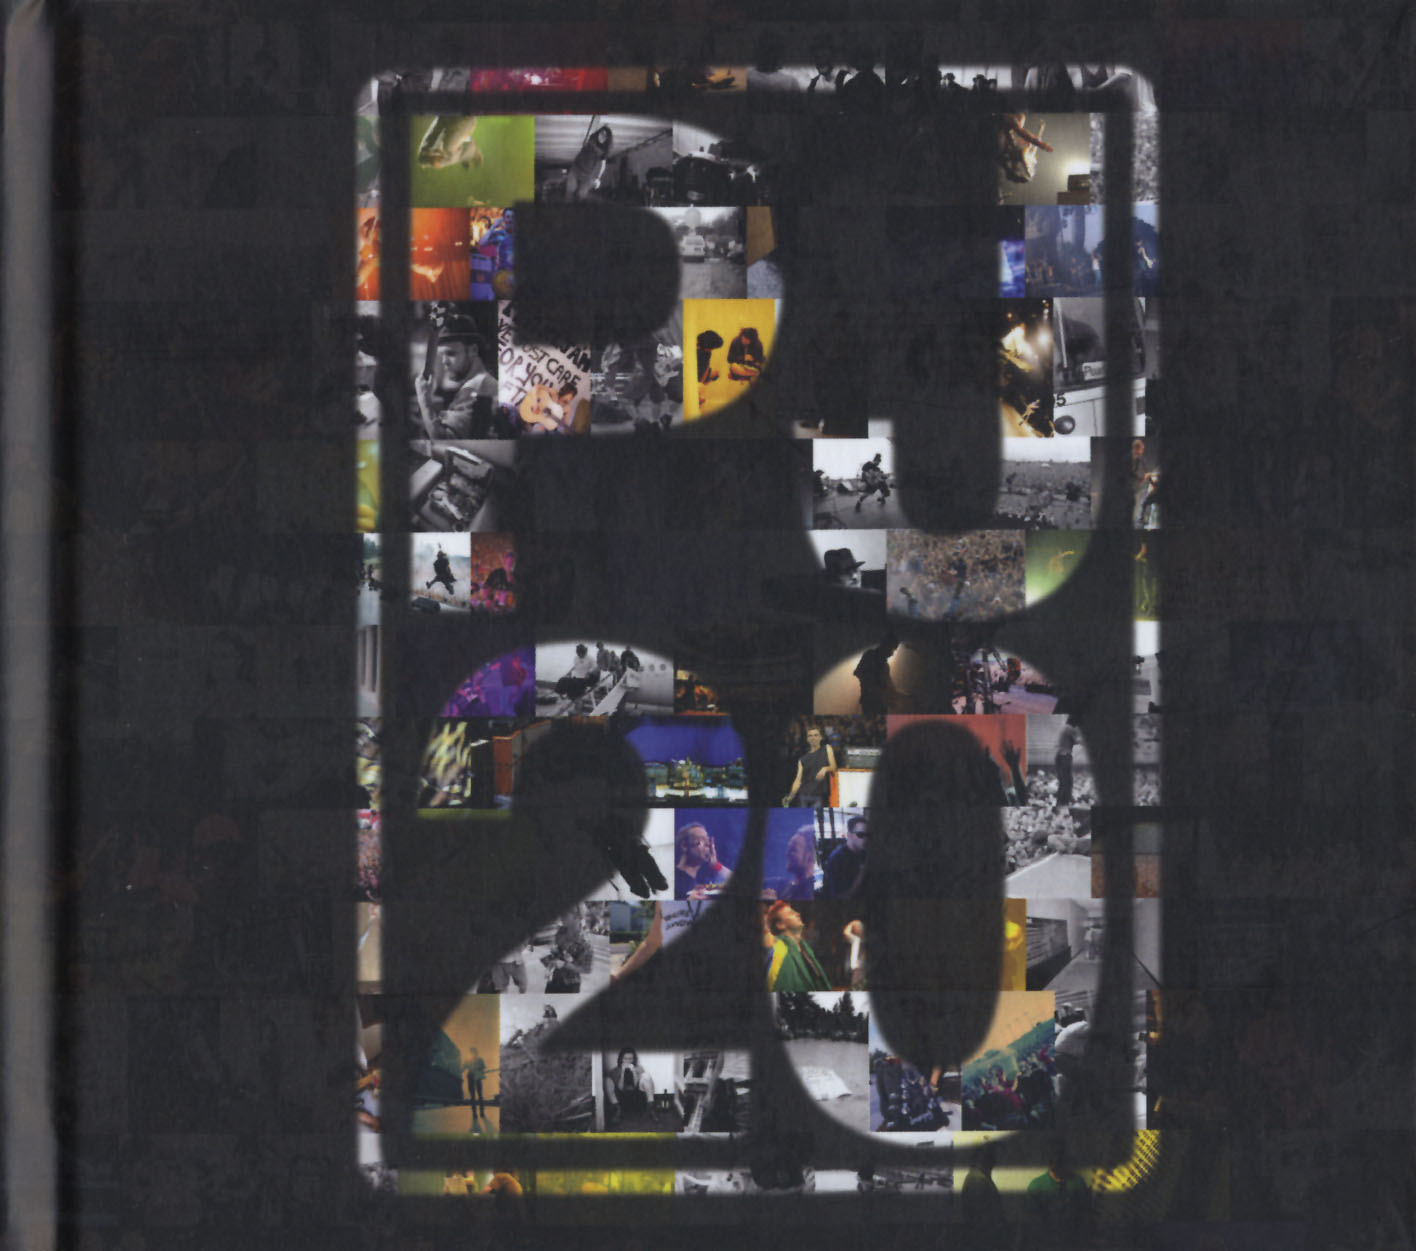 Pearl Jam Twenty Original Motion Picture Soundtrack